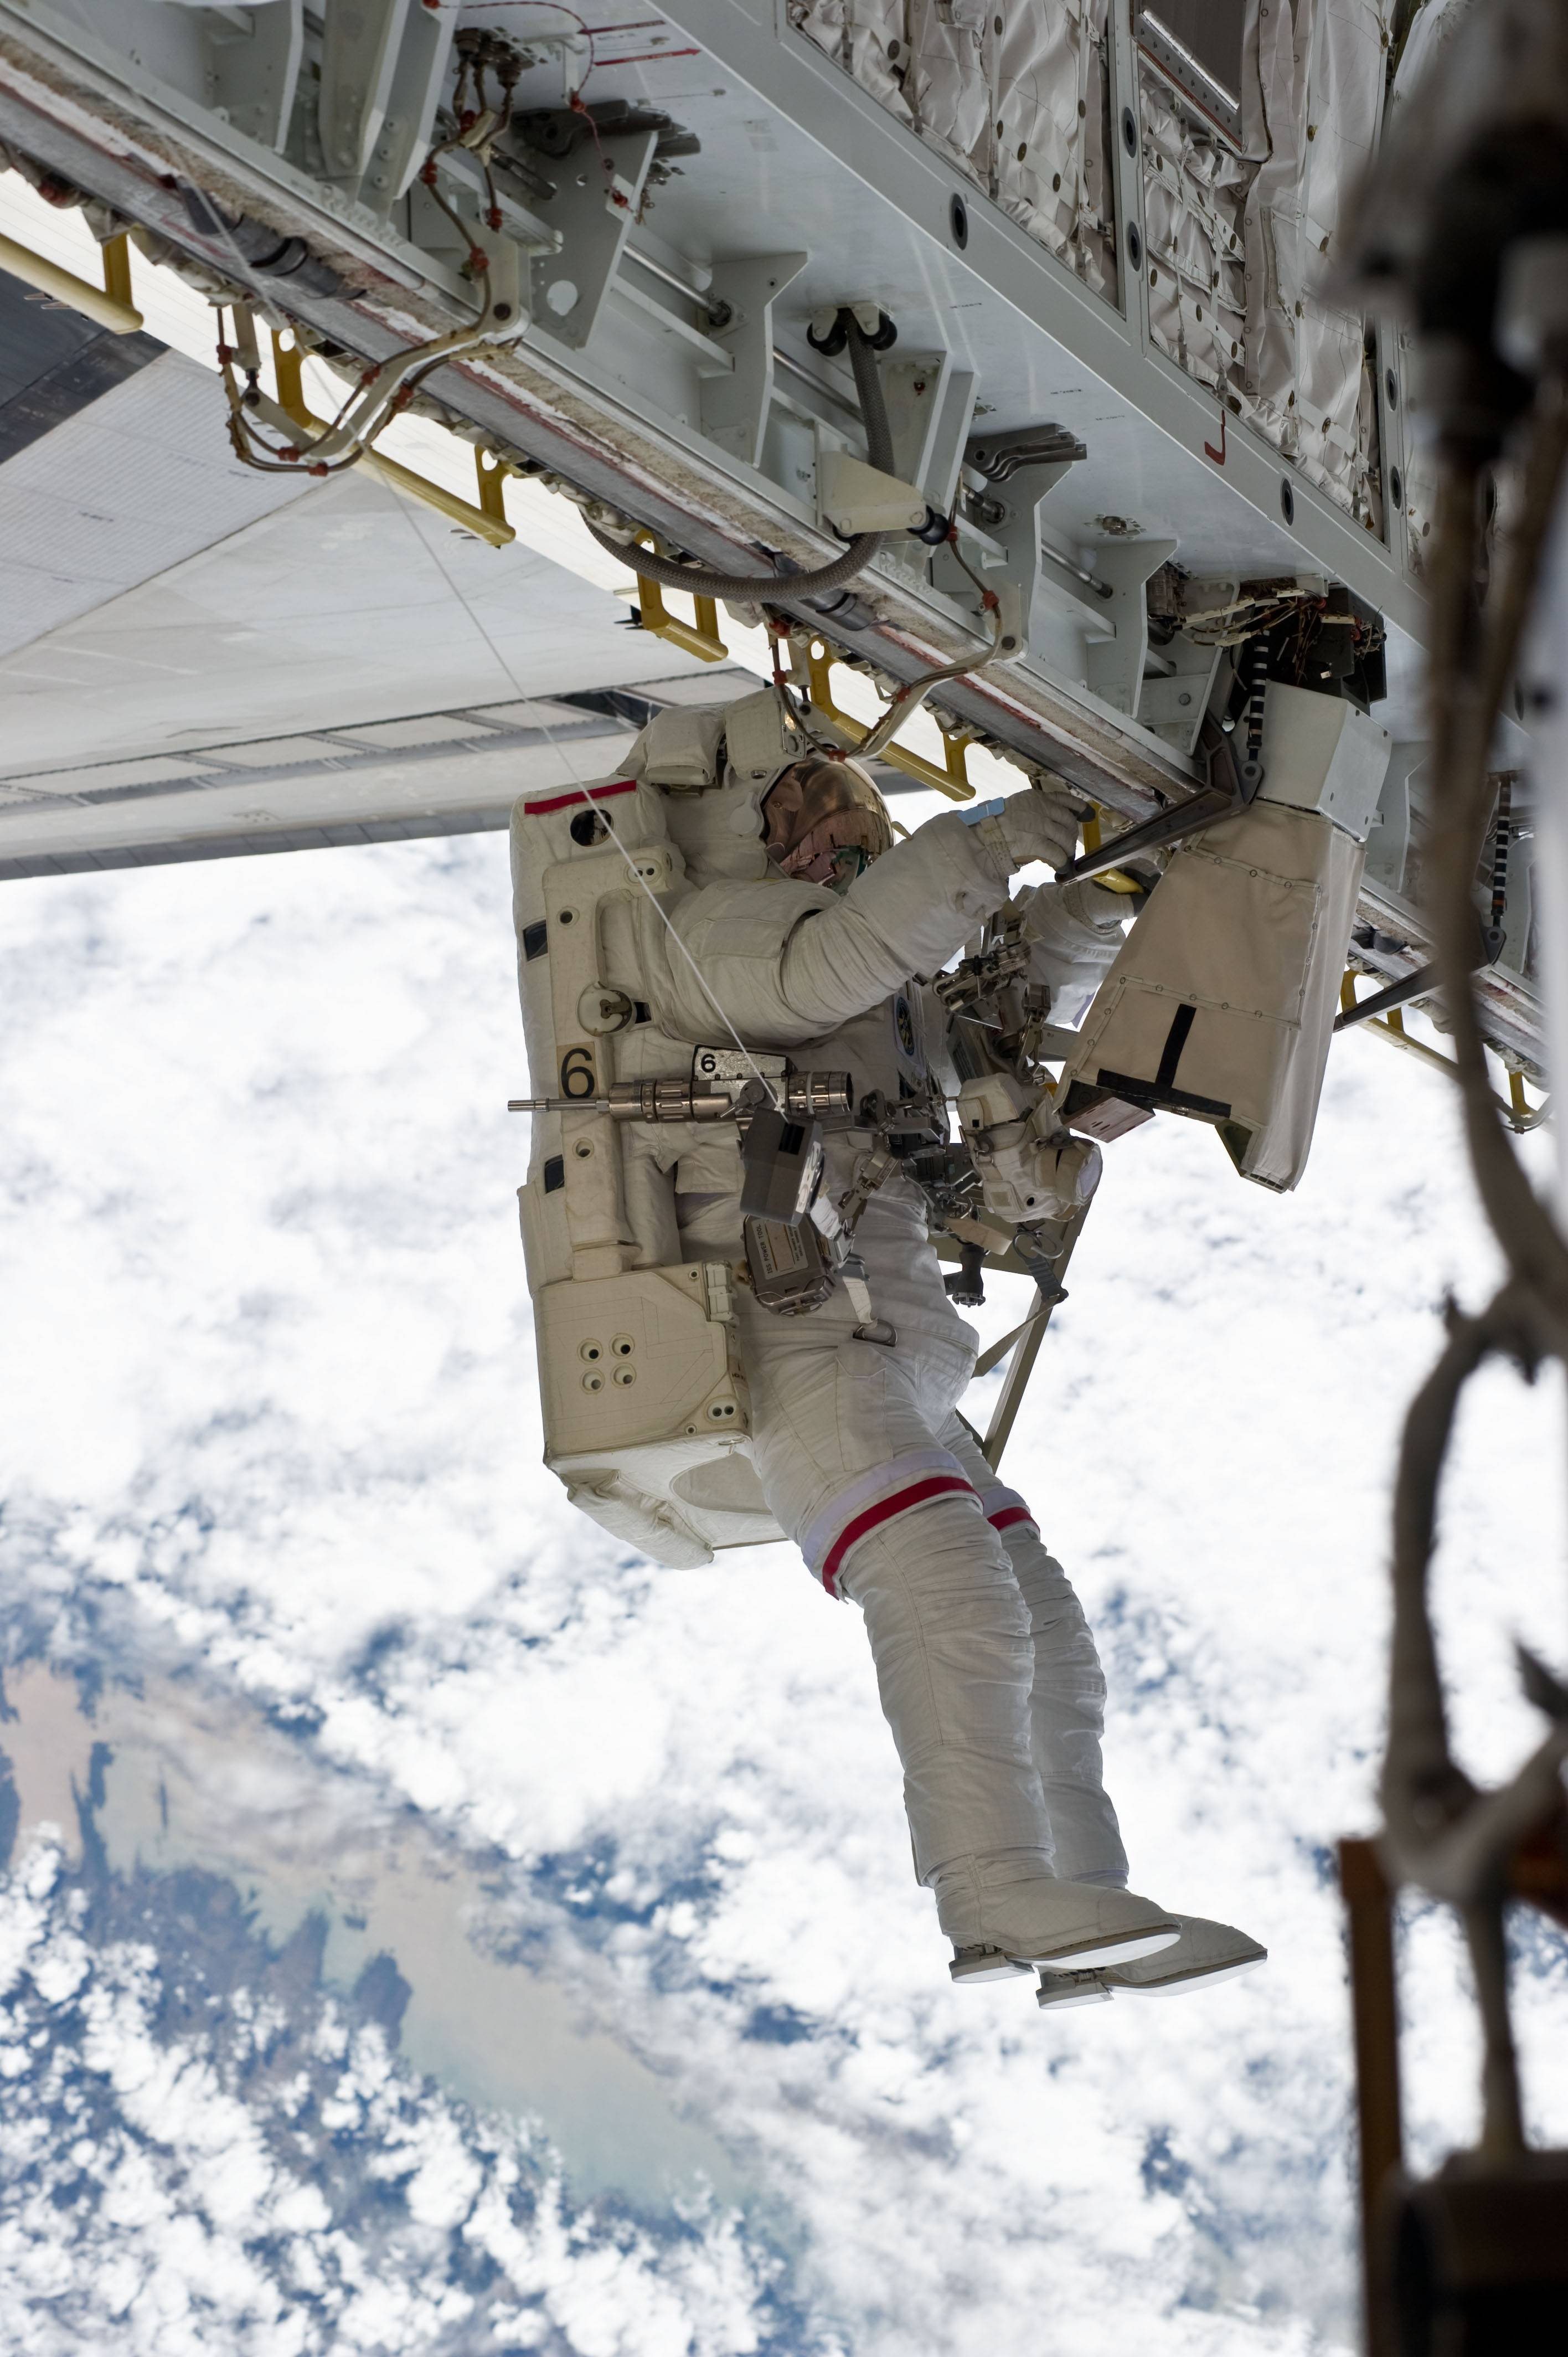 Astronaut Rick Mastracchio working with a SAFER system attached.